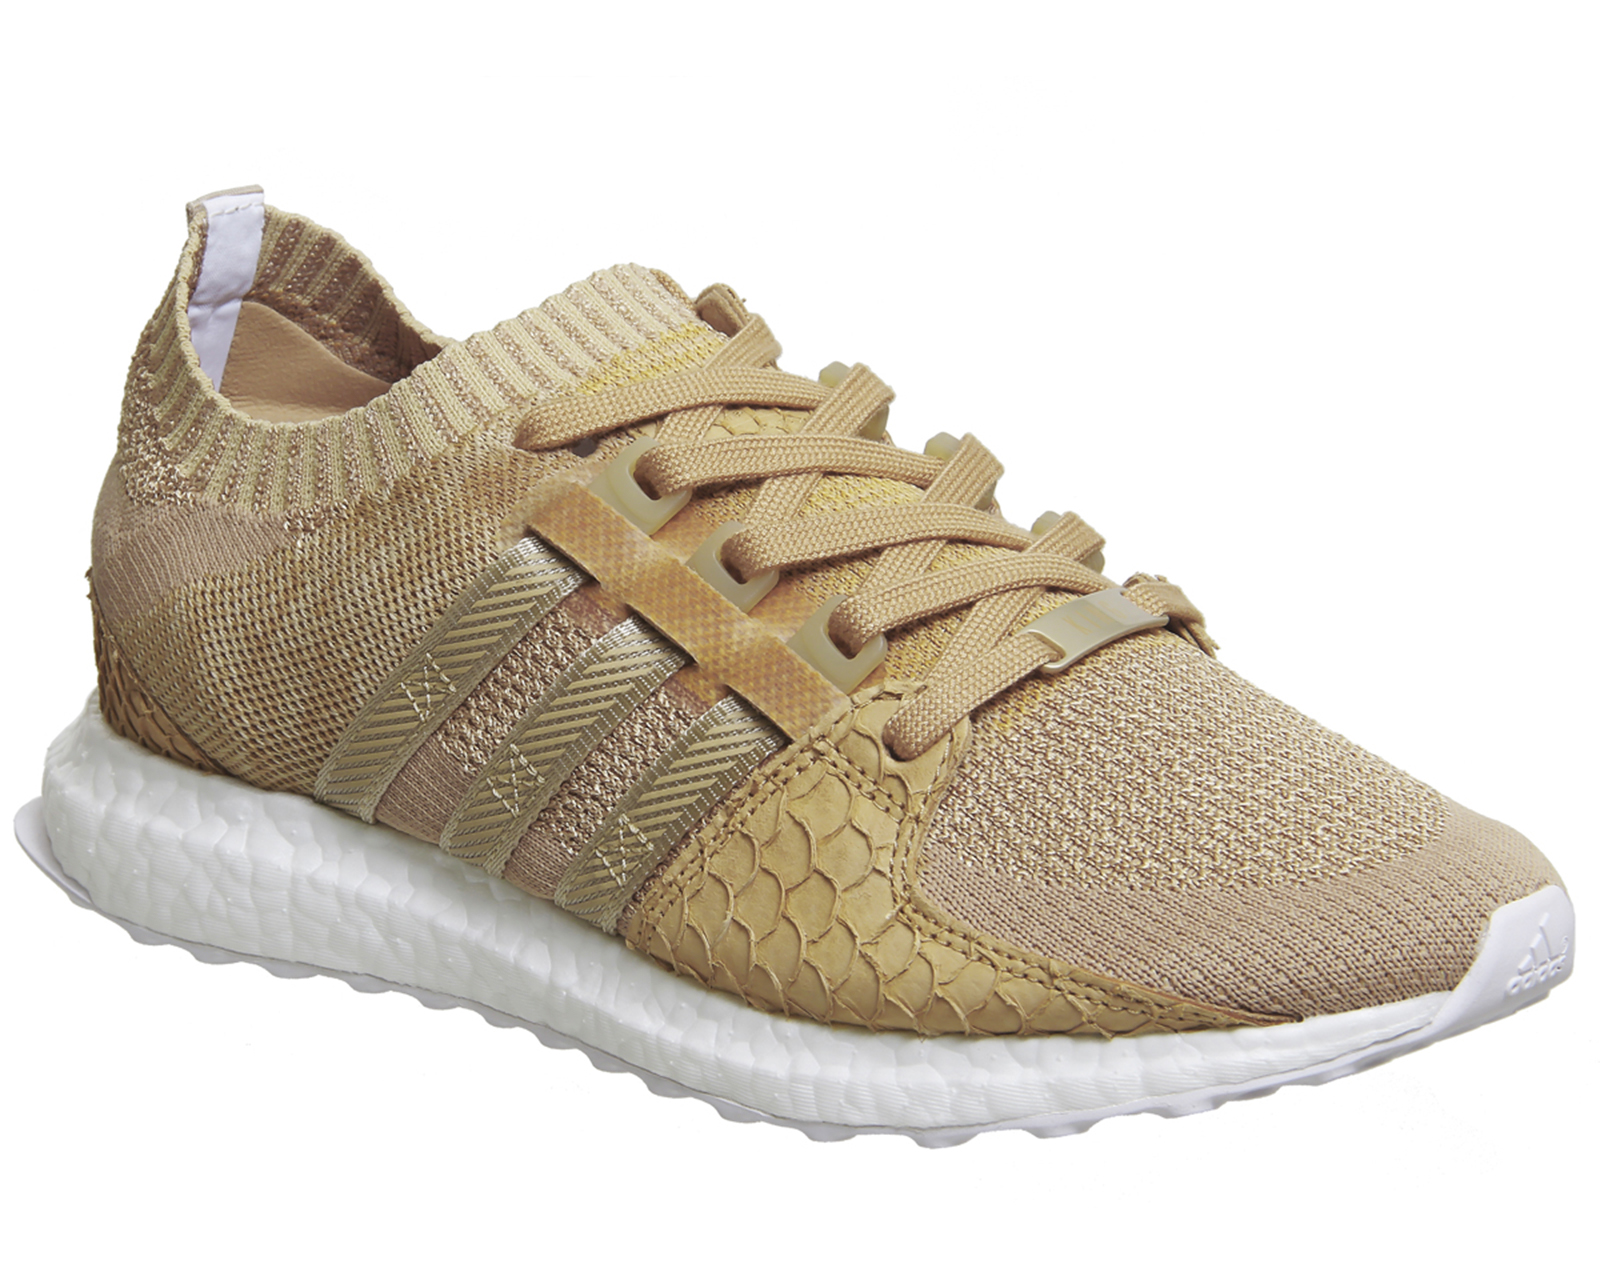 d38f17cb5 Sentinel Adidas Eqt Support Ultra PUSHA T BROWN BAG Trainers Shoes